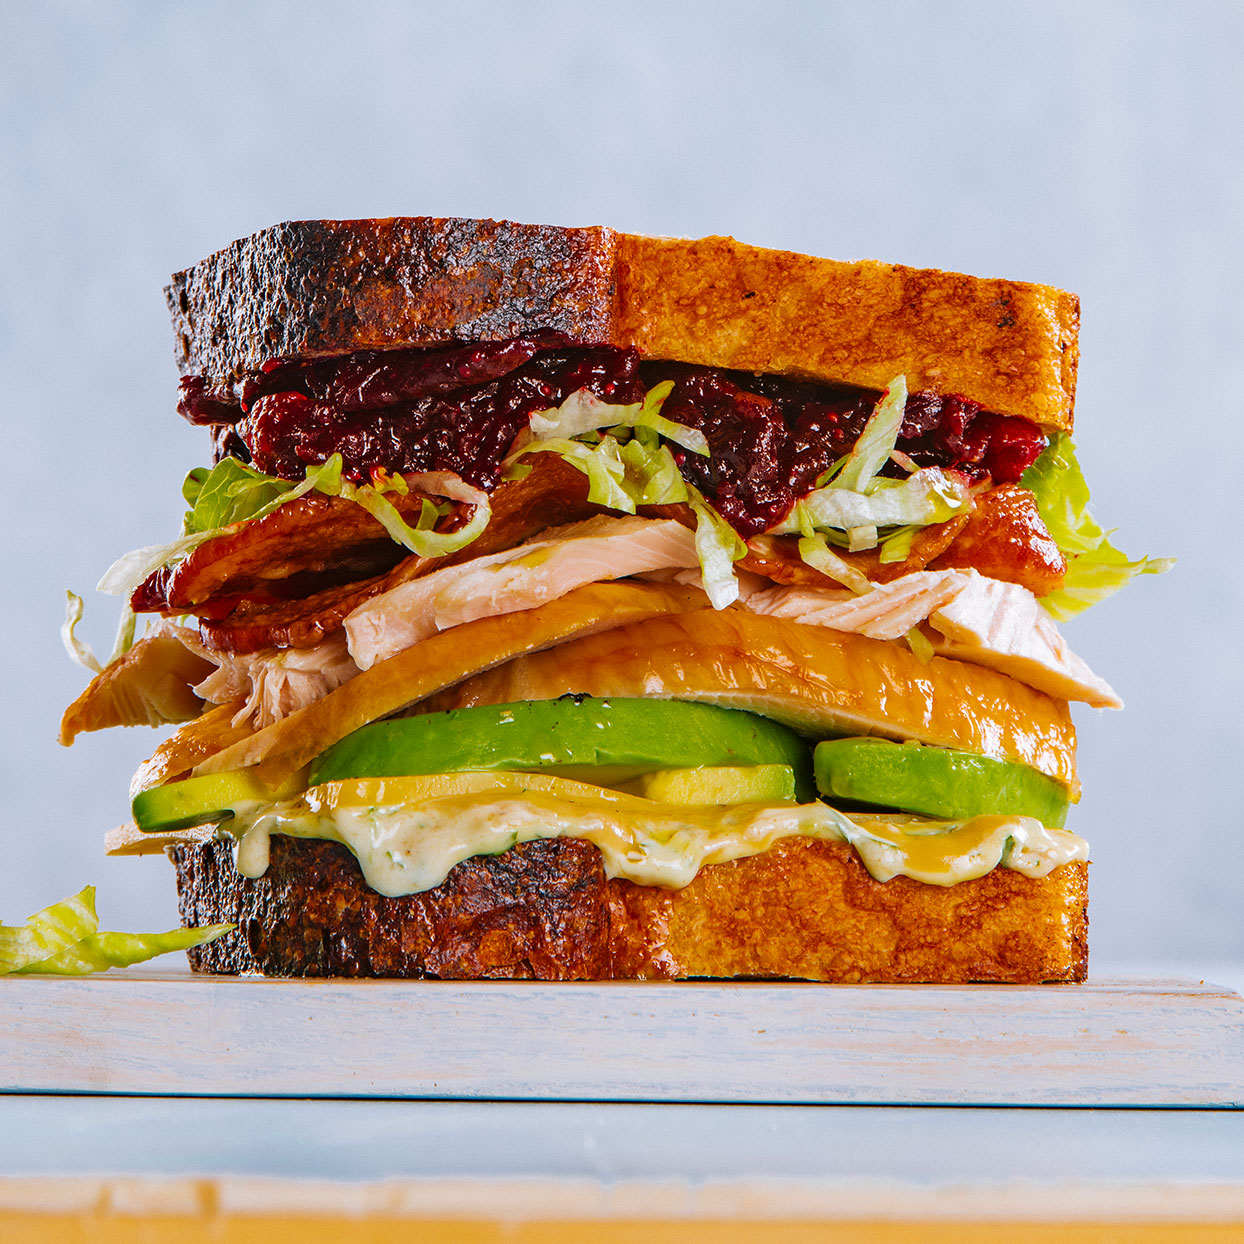 After Thanksgiving, we cannot get enough leftover turkey recipes—and this healthy turkey avocado sandwich will help you use up Thanksgiving leftovers and more. If you really want to do this sandwich up, chef Hugh Acheson suggests searing a slice of turkey stuffing or bread pudding until it's nice and crispy and putting it between the turkey and avocado.